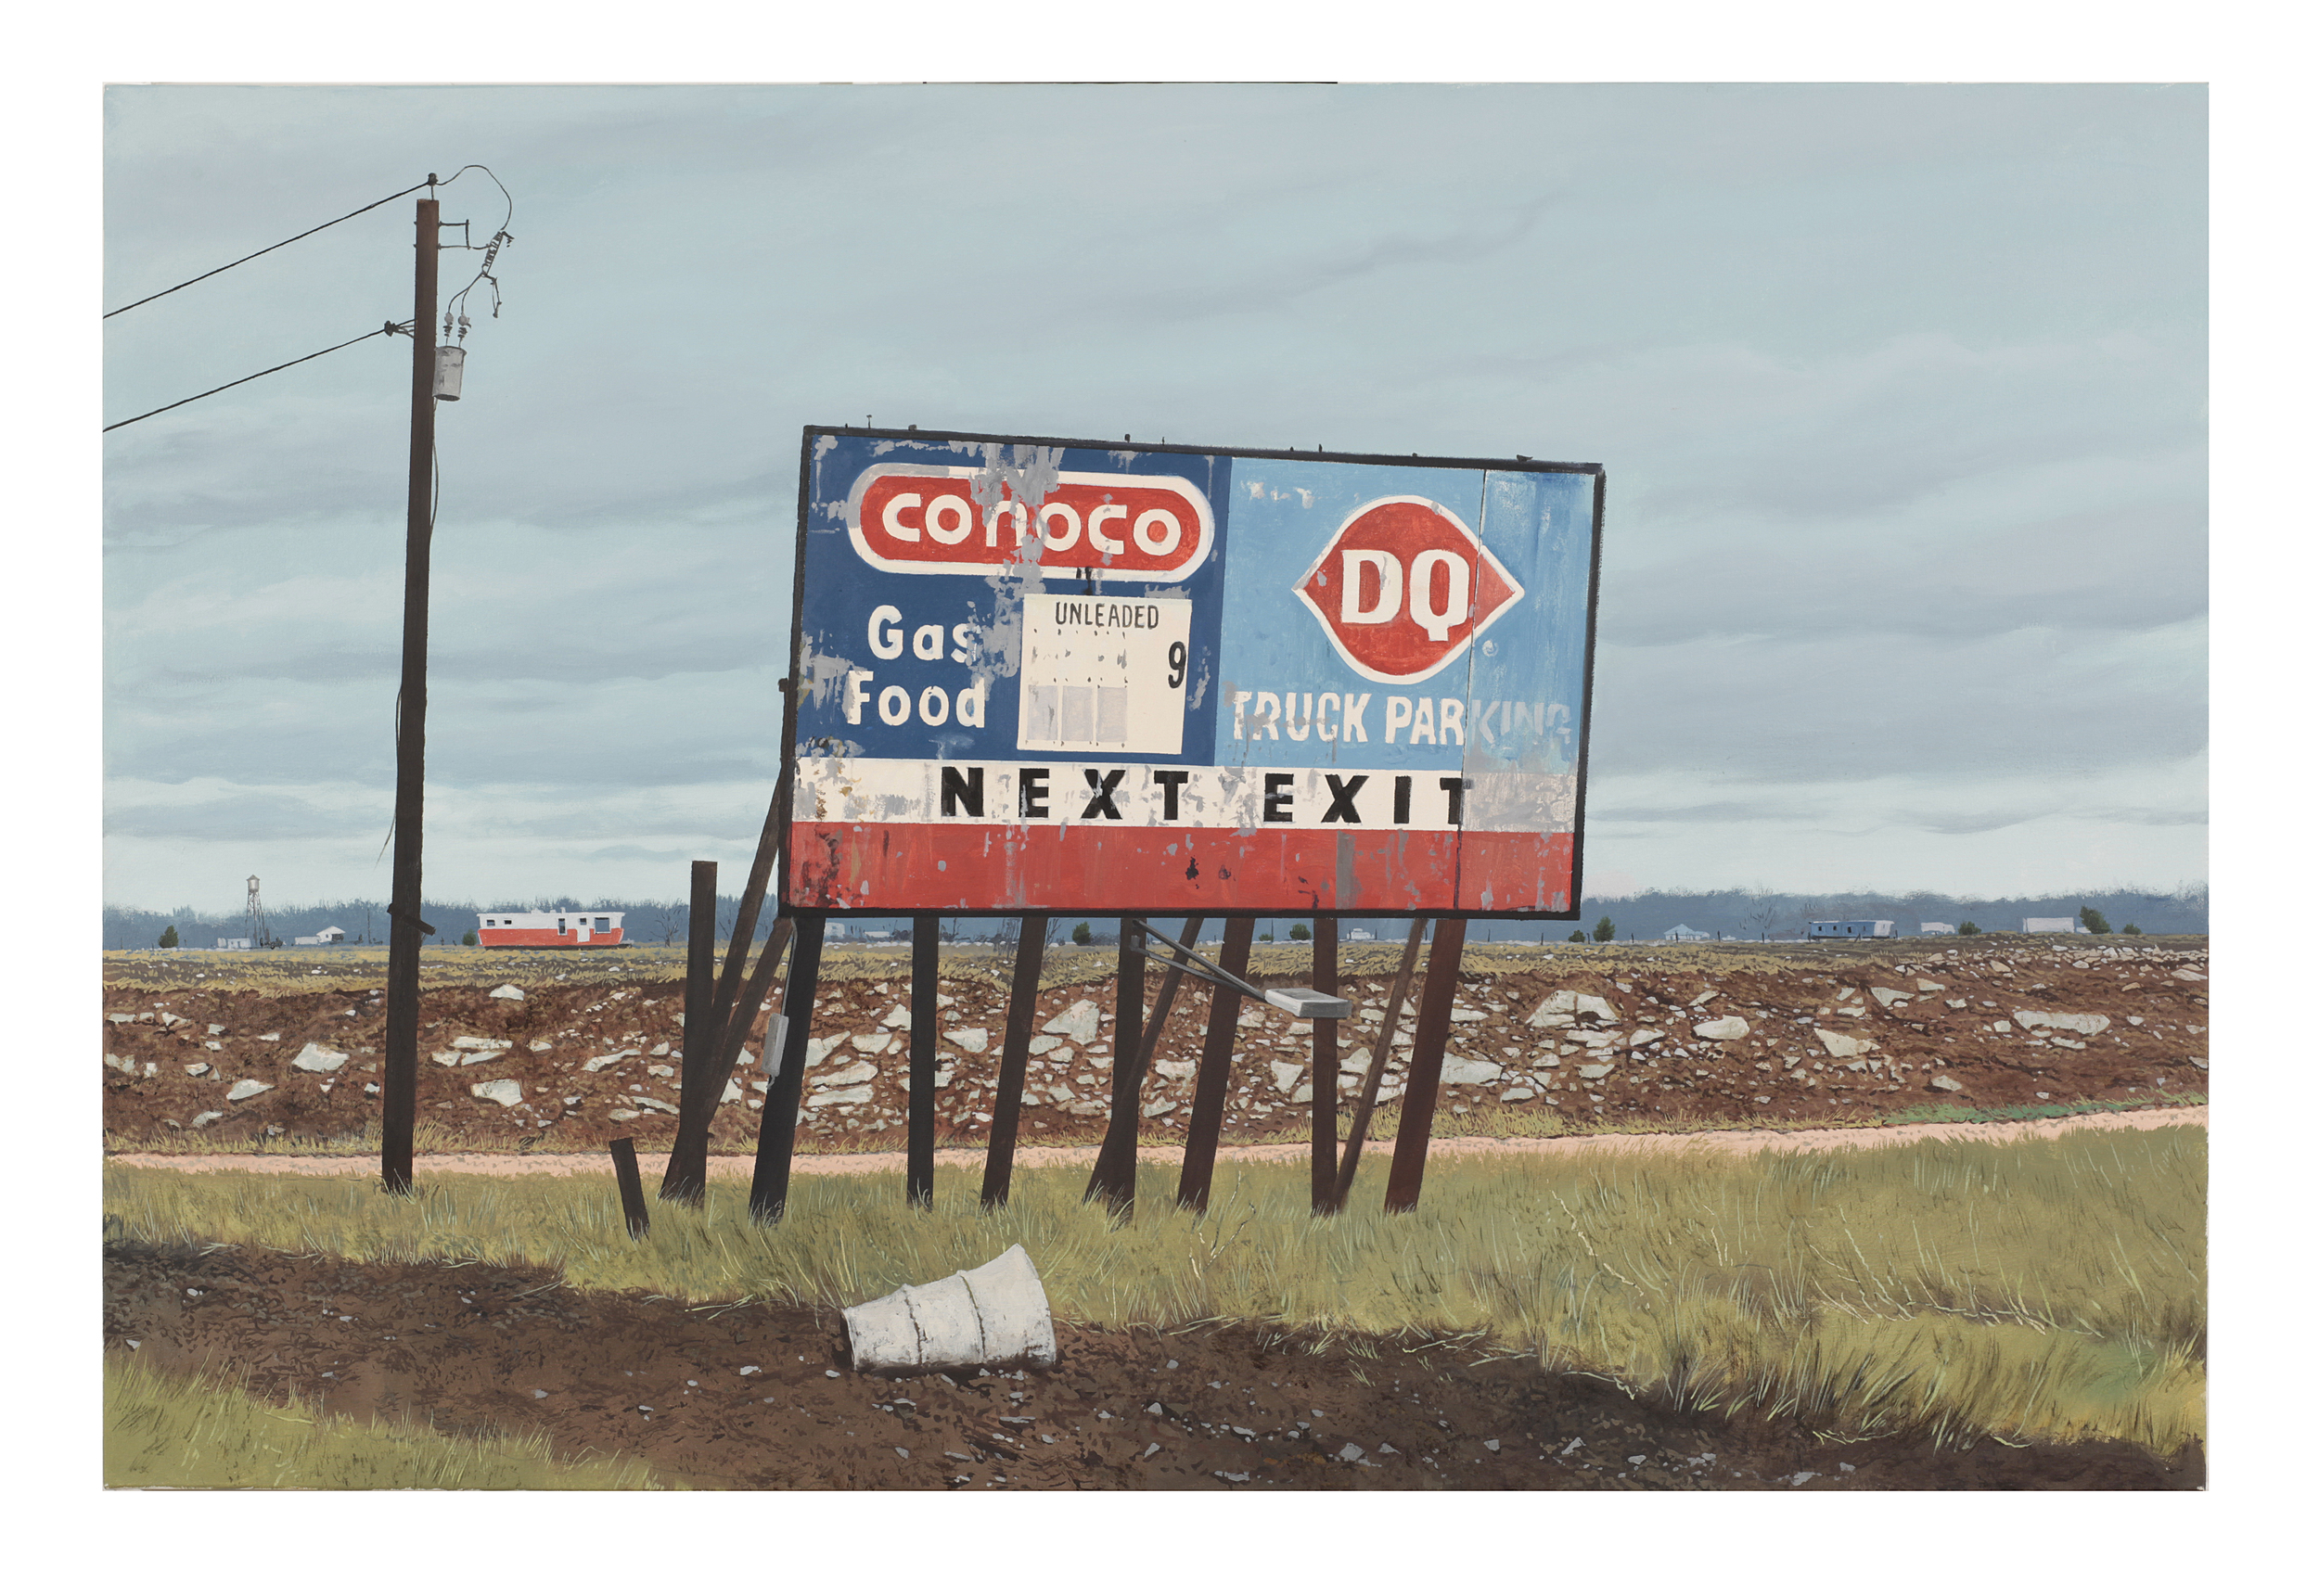 """Daniel Blagg,  Way to Midland,  oil on canvas, 40 x 60"""" $11,000. Contact Artspace111 to purchase."""